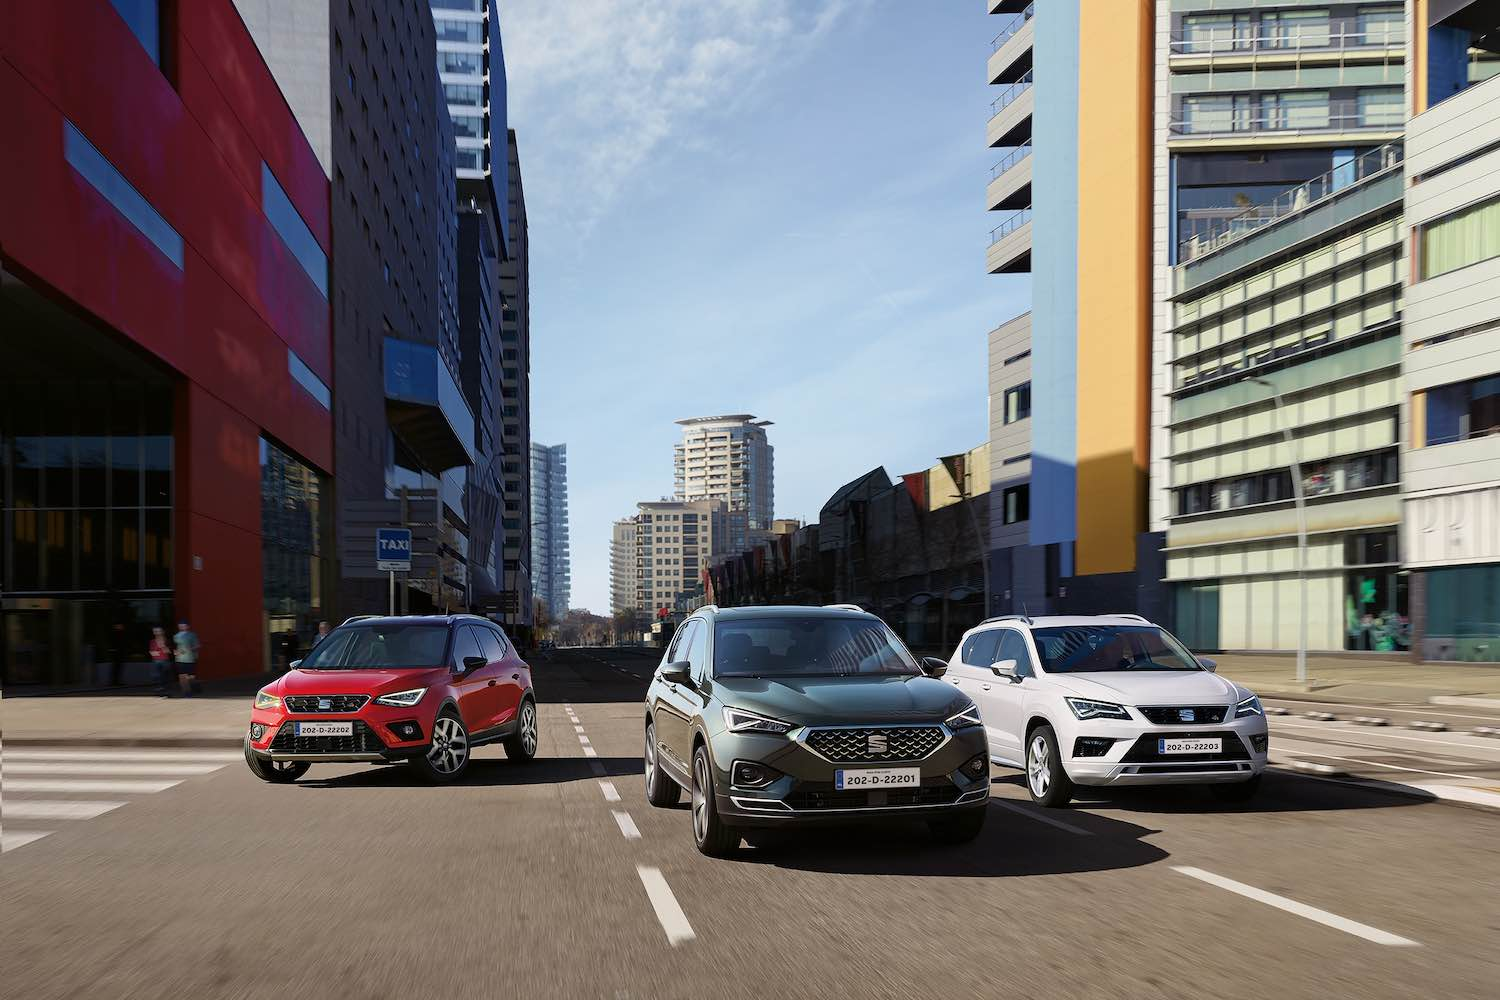 Car News | SEAT highlights special offers for 202 plate | CompleteCar.ie